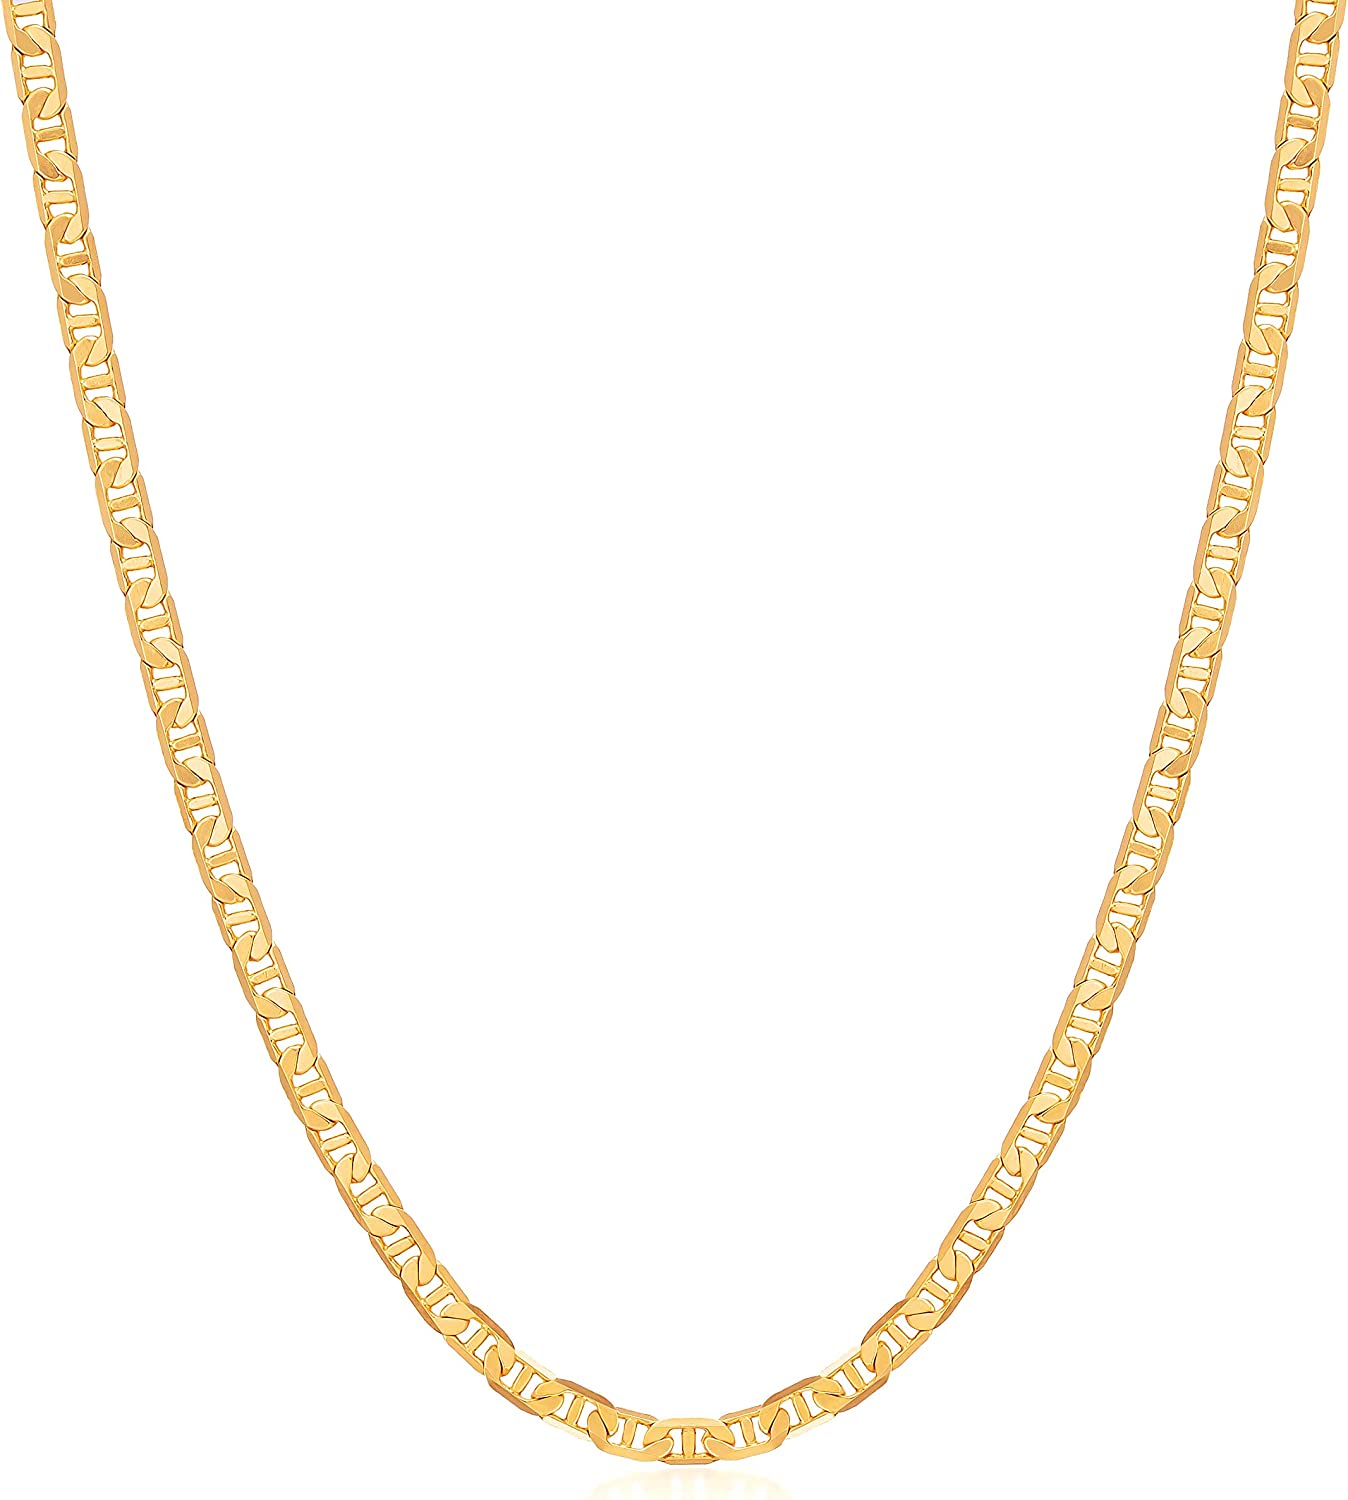 Womens Chain Necklace, Mens Gold Chain Necklace   Barzel 18K Gold Plated Flat Mariner / Marina 3MM, 3.5MM, 4.5MM, 5MM, 6MM, 8MM Chain Necklace